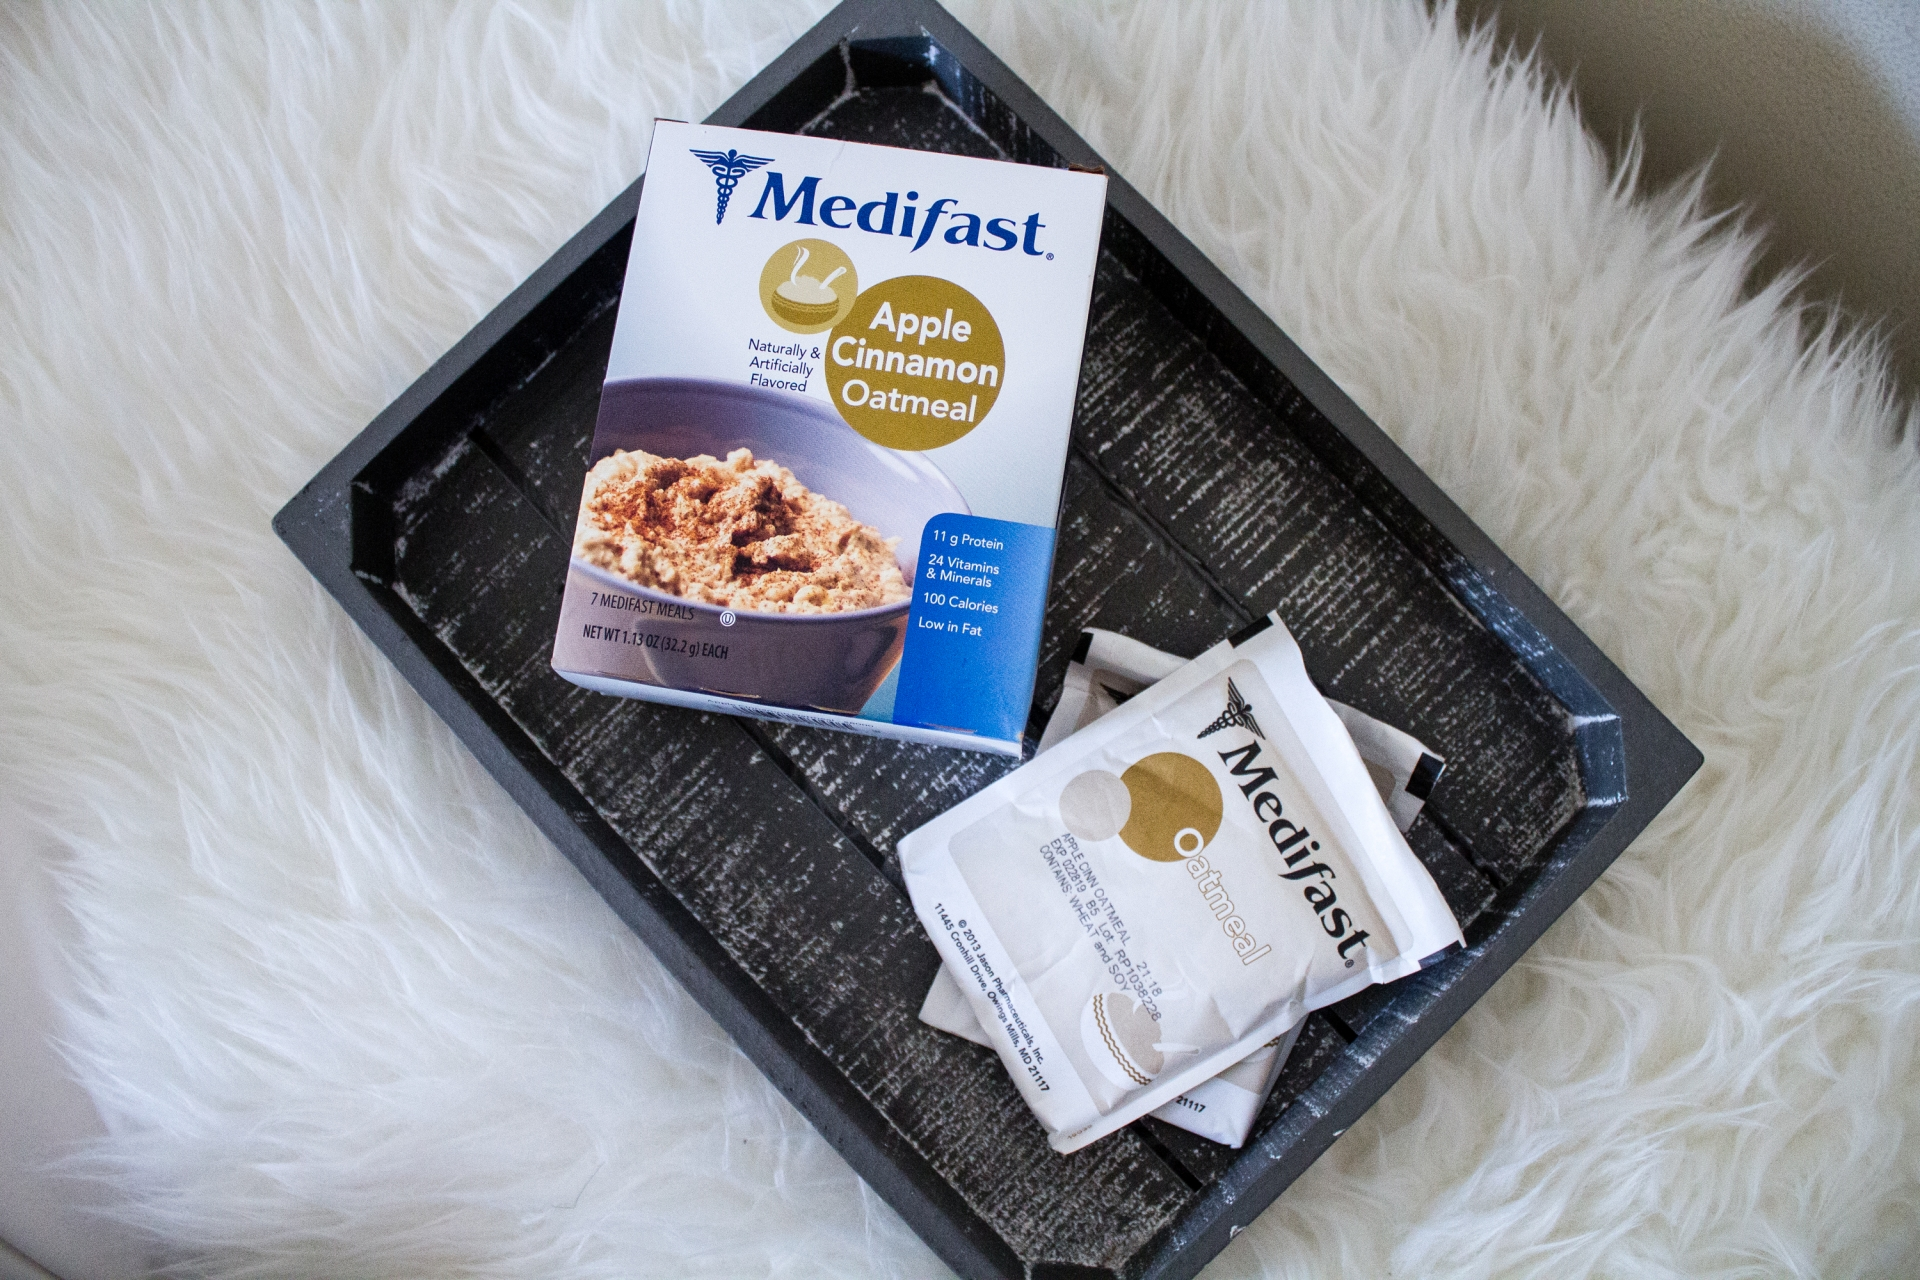 Medifast-Go-Breakfast-Collection-Apple-Cinnamon-Oatmeals